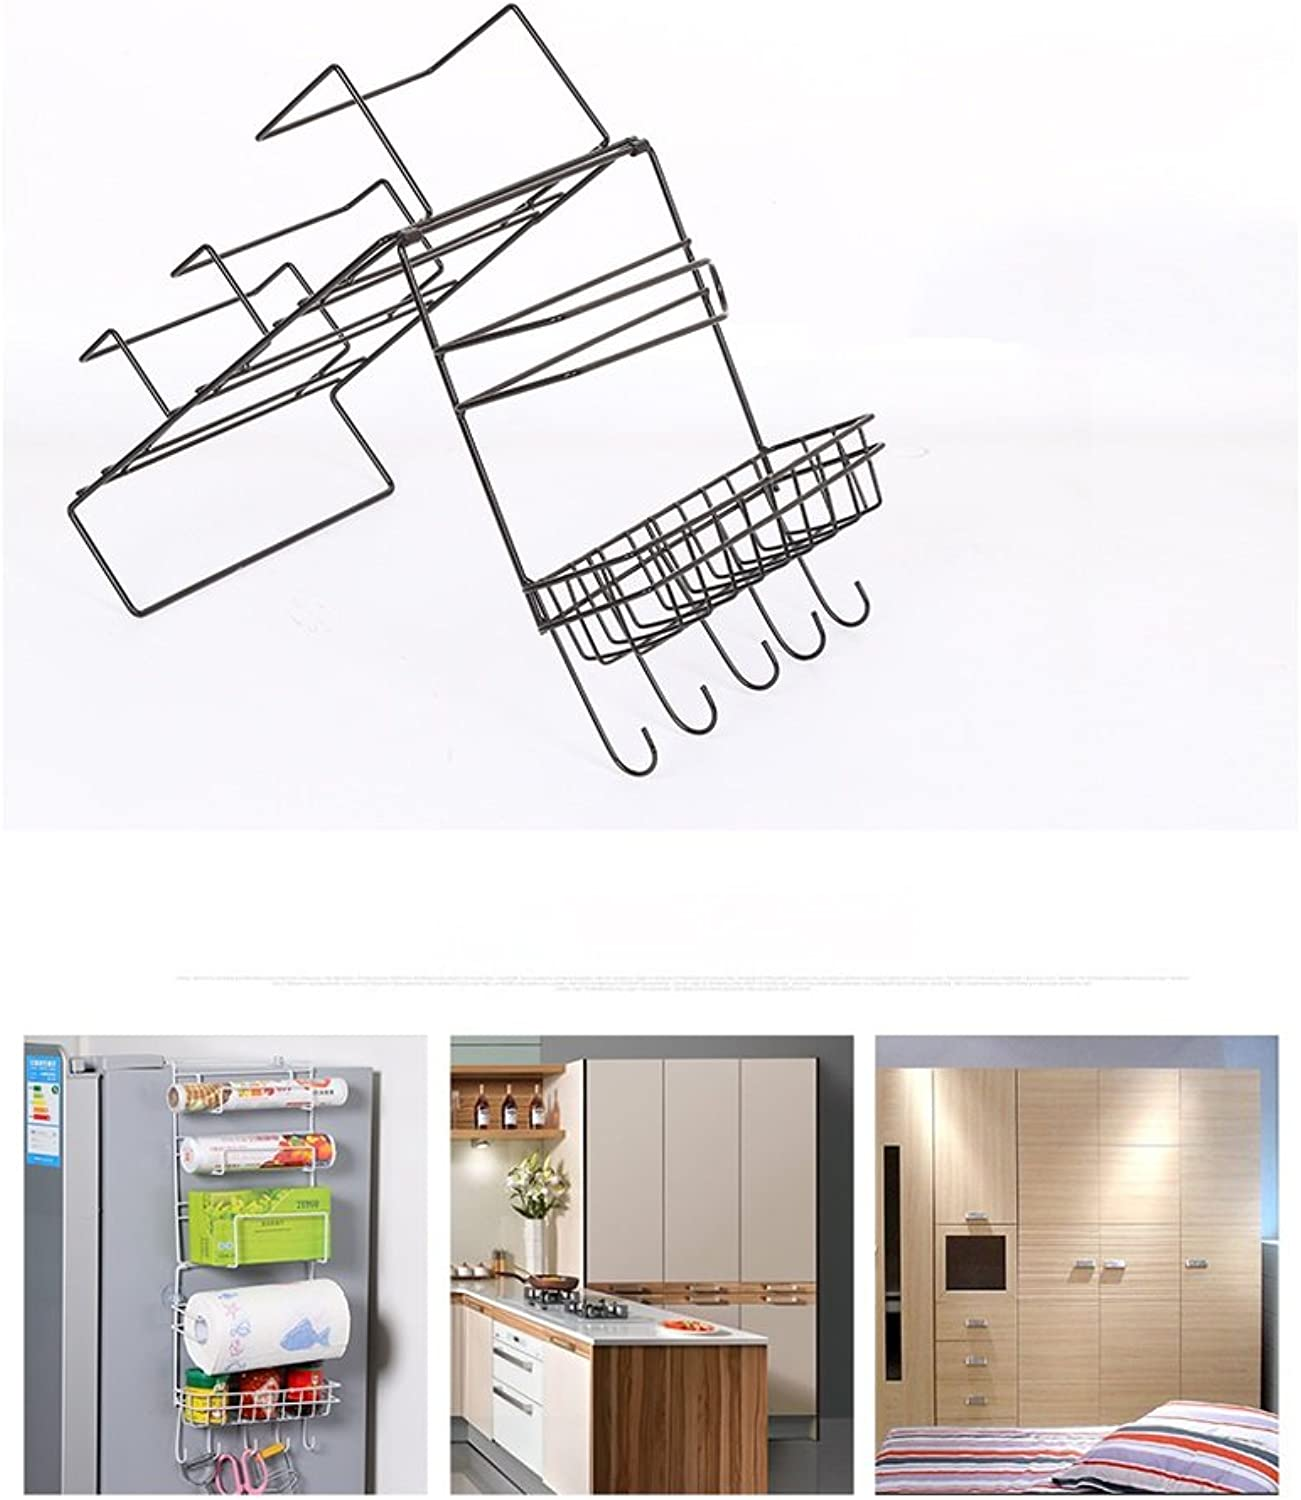 LBYMYB Creative Refrigerator Side Hanger Wrought Iron Kitchen Shelf Wall Mount Kitchen Appliances Storage Plastic Wrap Shelf Kitchen Storage Rack (color   Bronze)